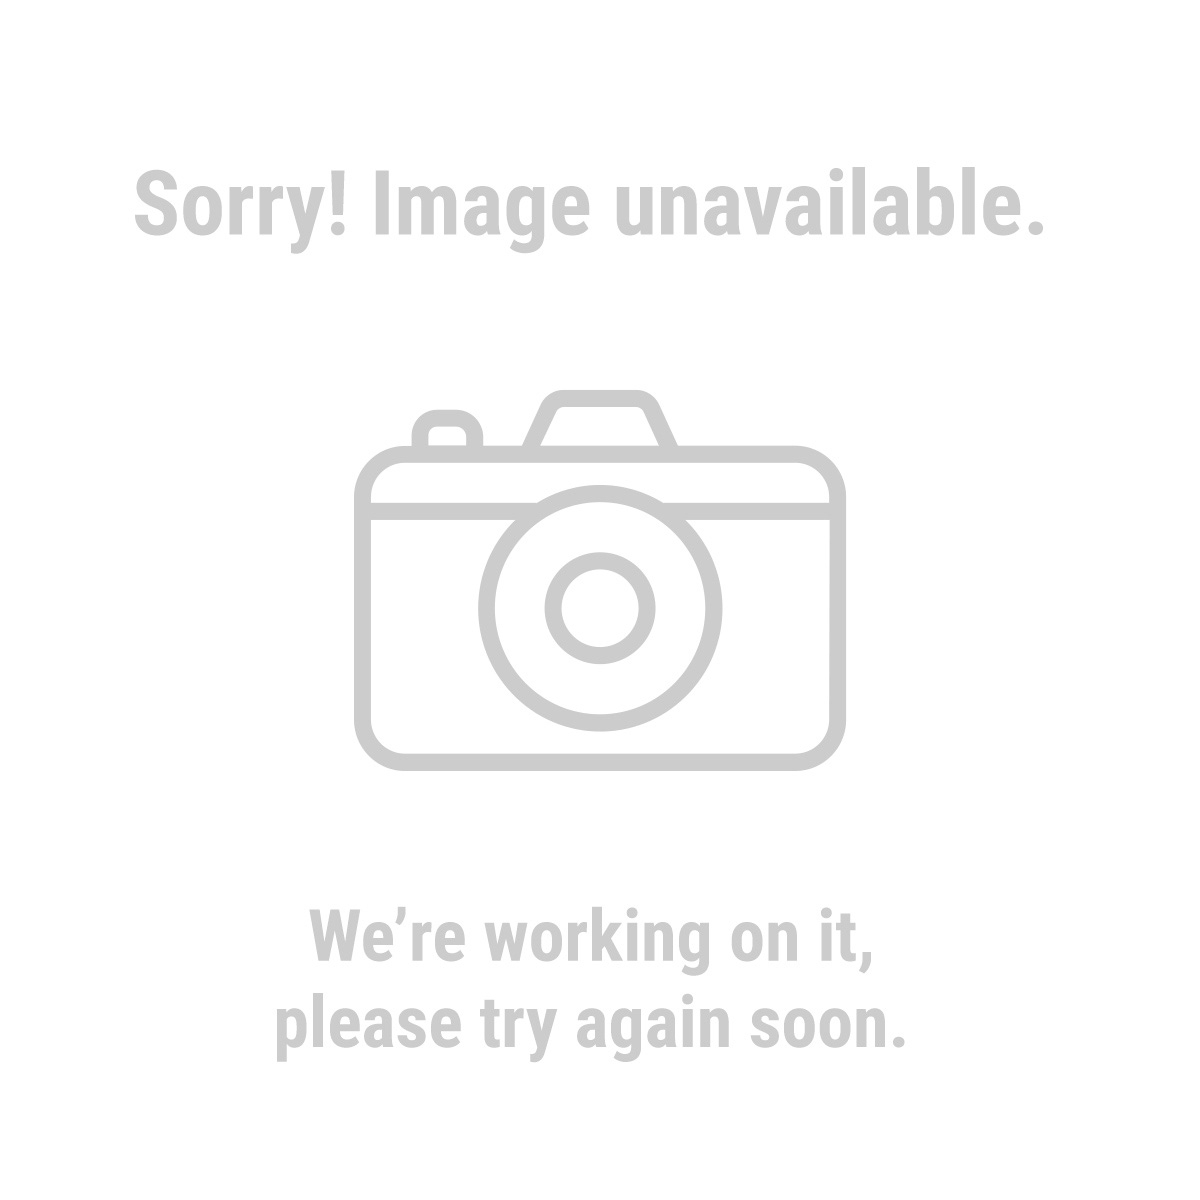 Bunker Hill Security 94747 LED Solar Security Light